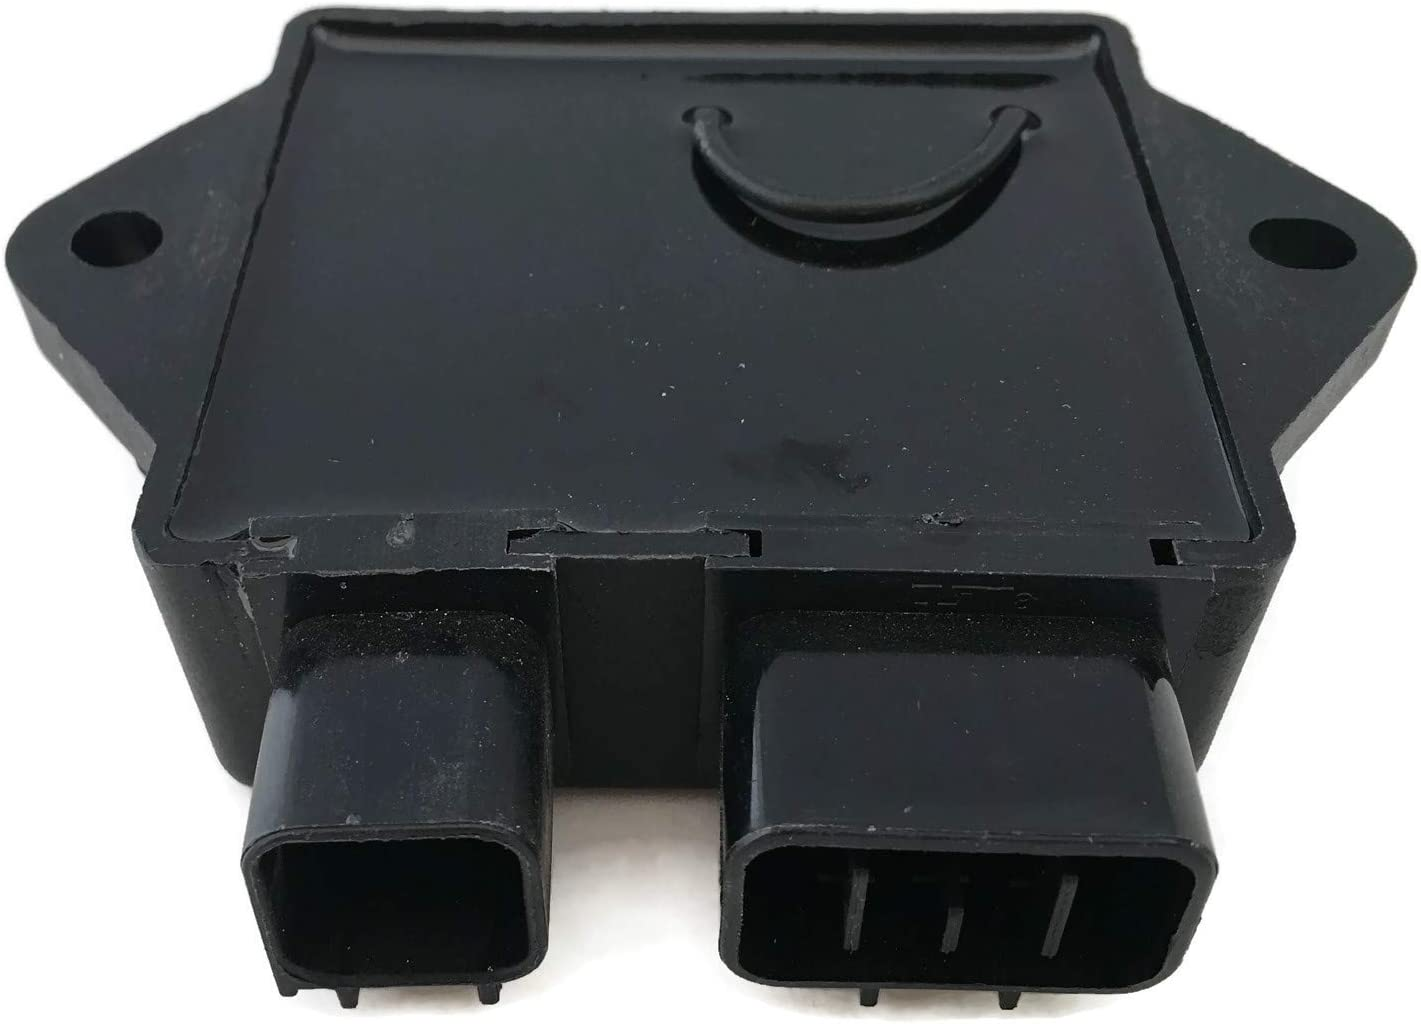 ITACO 2021 spring and summer new Boat Motor 40F-01.03.20 Super special price CDI Unit 2 Outboard Assy for Hidea